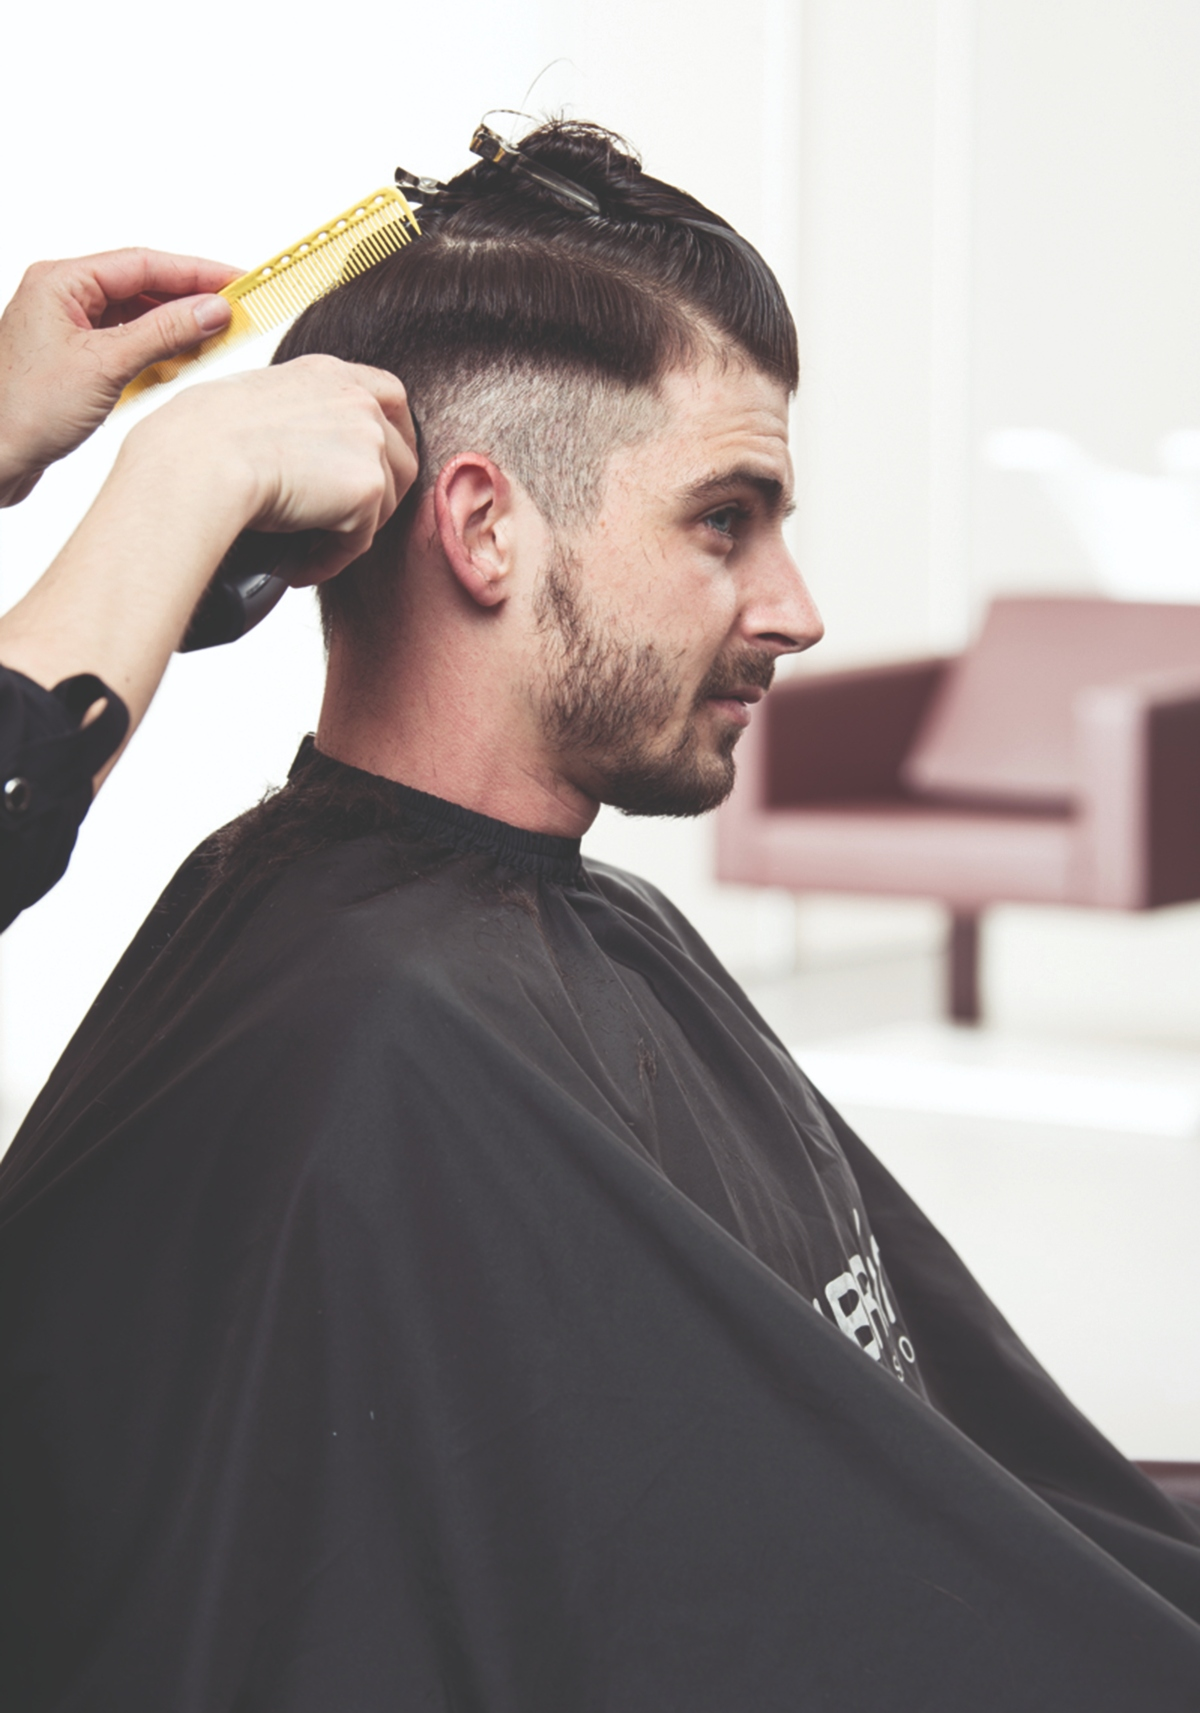 stella_trend_2019_barber_step3